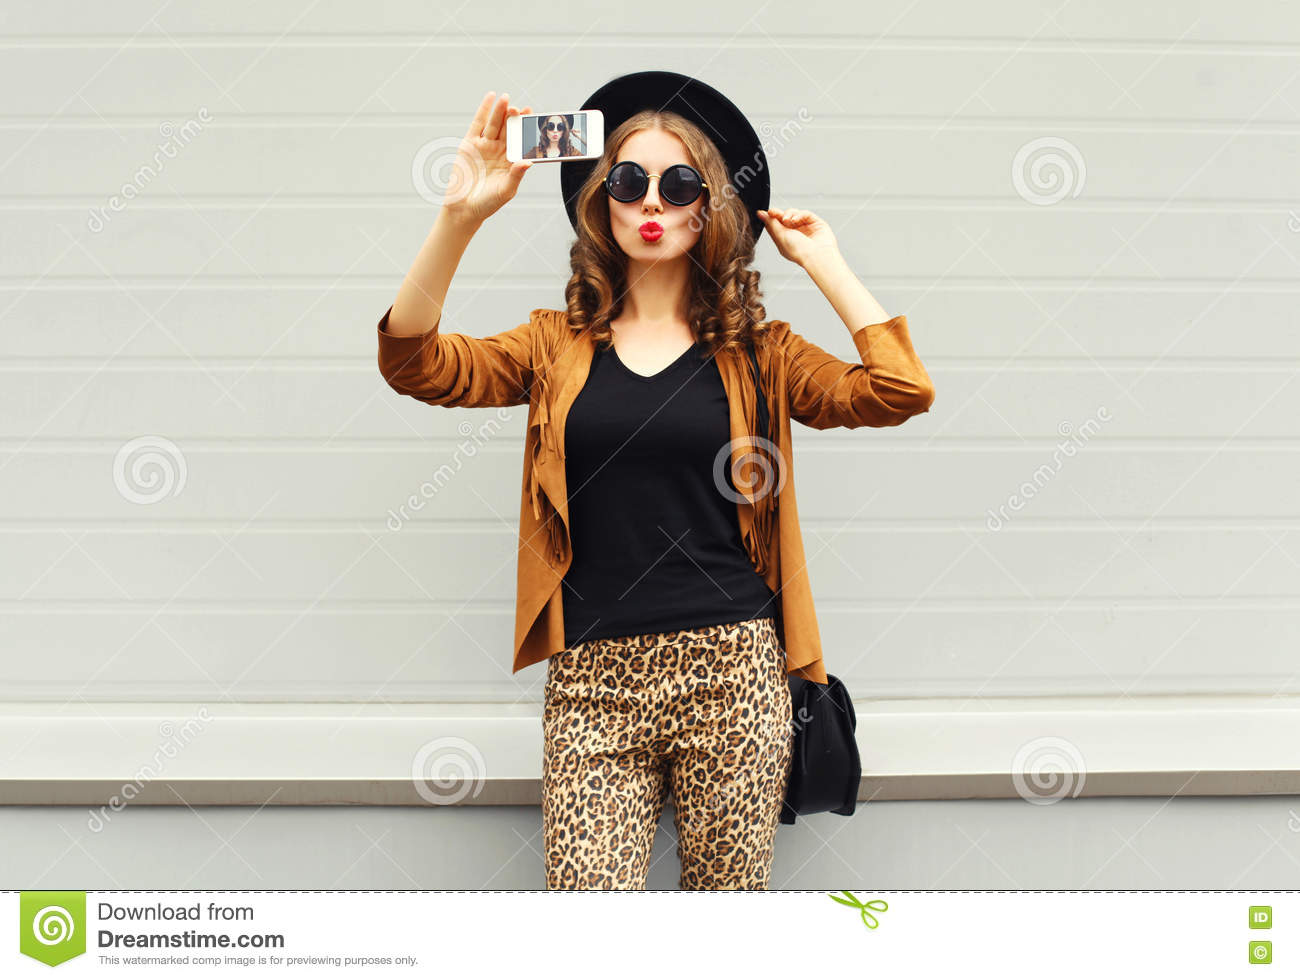 Fashion pretty young woman model taking photo picture self-portrait on smartphone wearing retro elegant hat, sunglasses